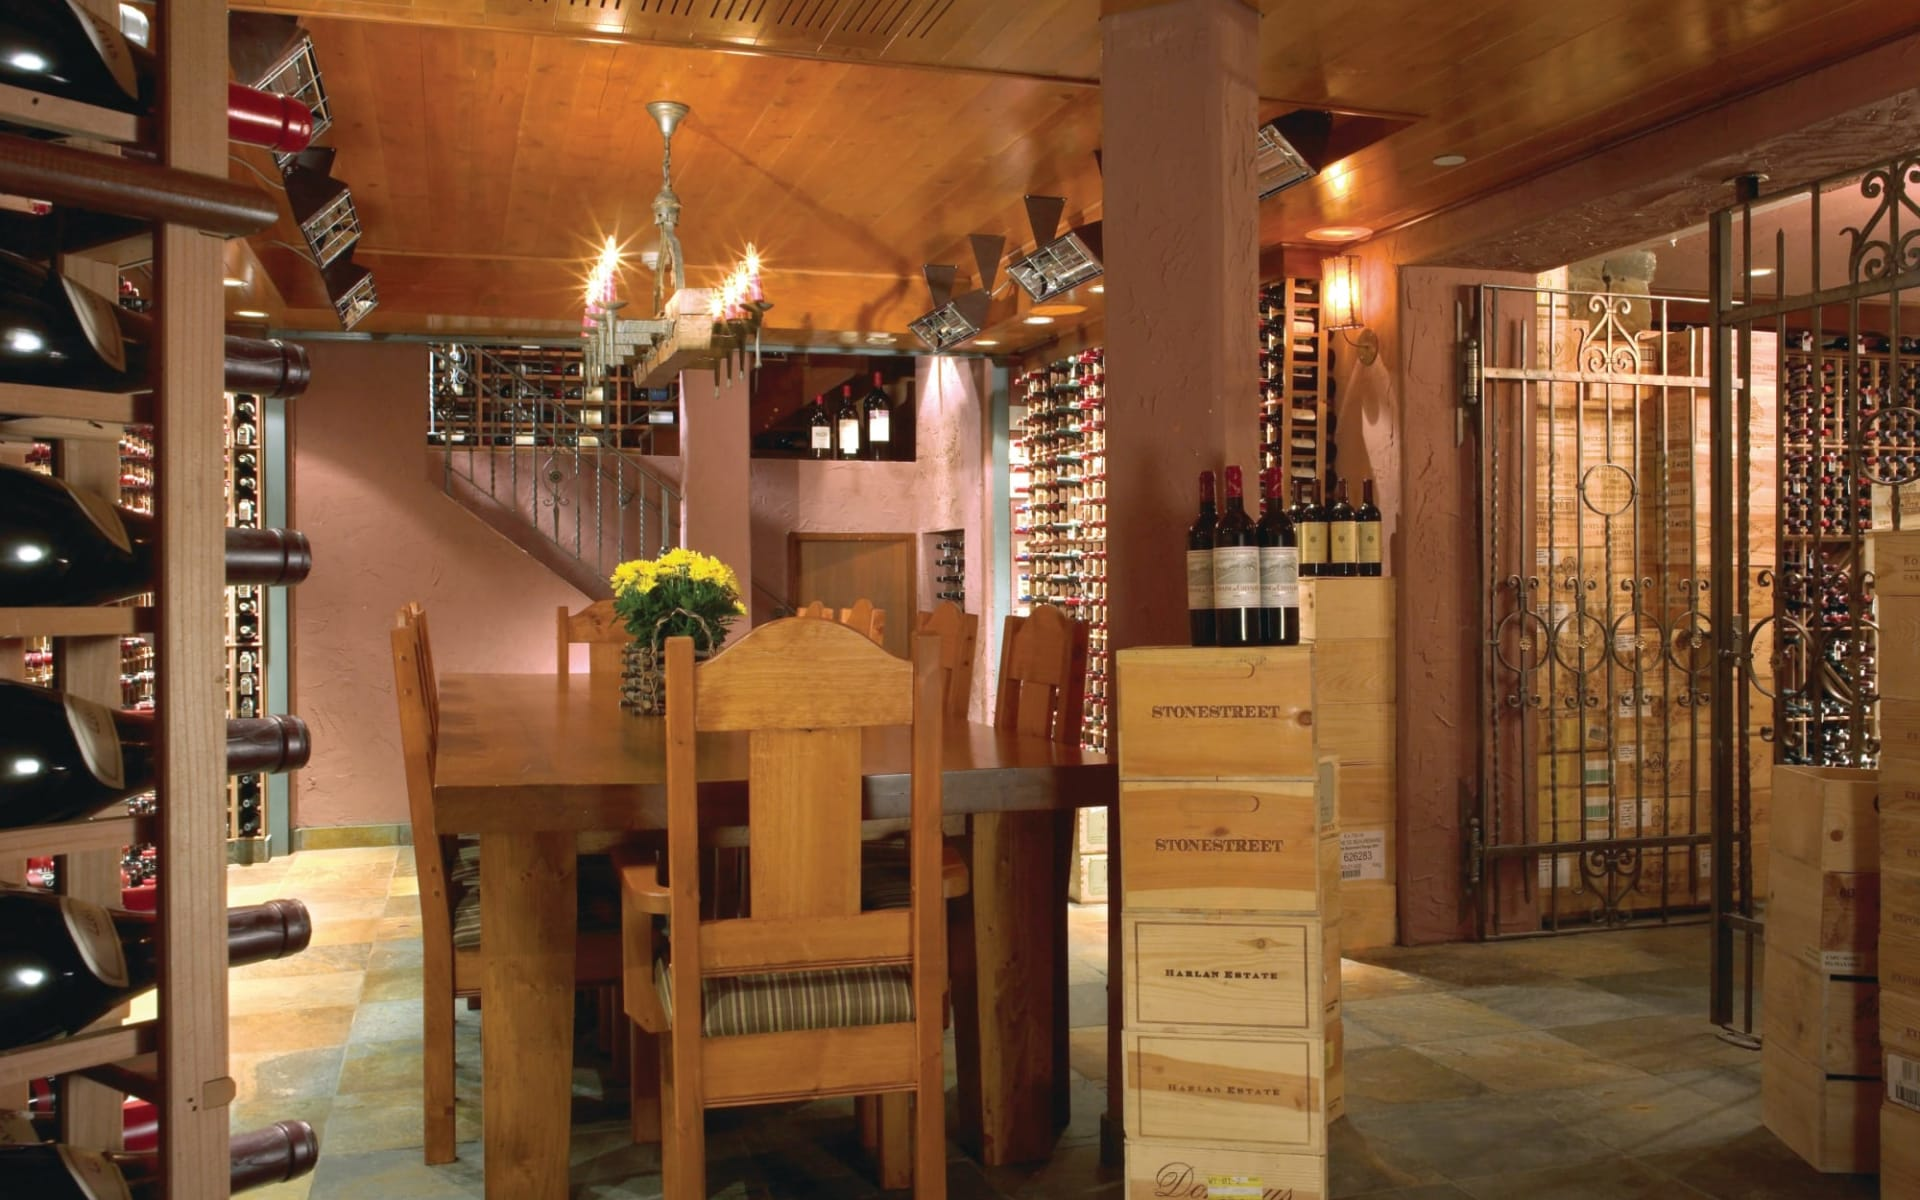 Post Hotel & Spa in Lake Louise: facilities_Post Hotel & Spa_WineCellar_cMichaelSoroka